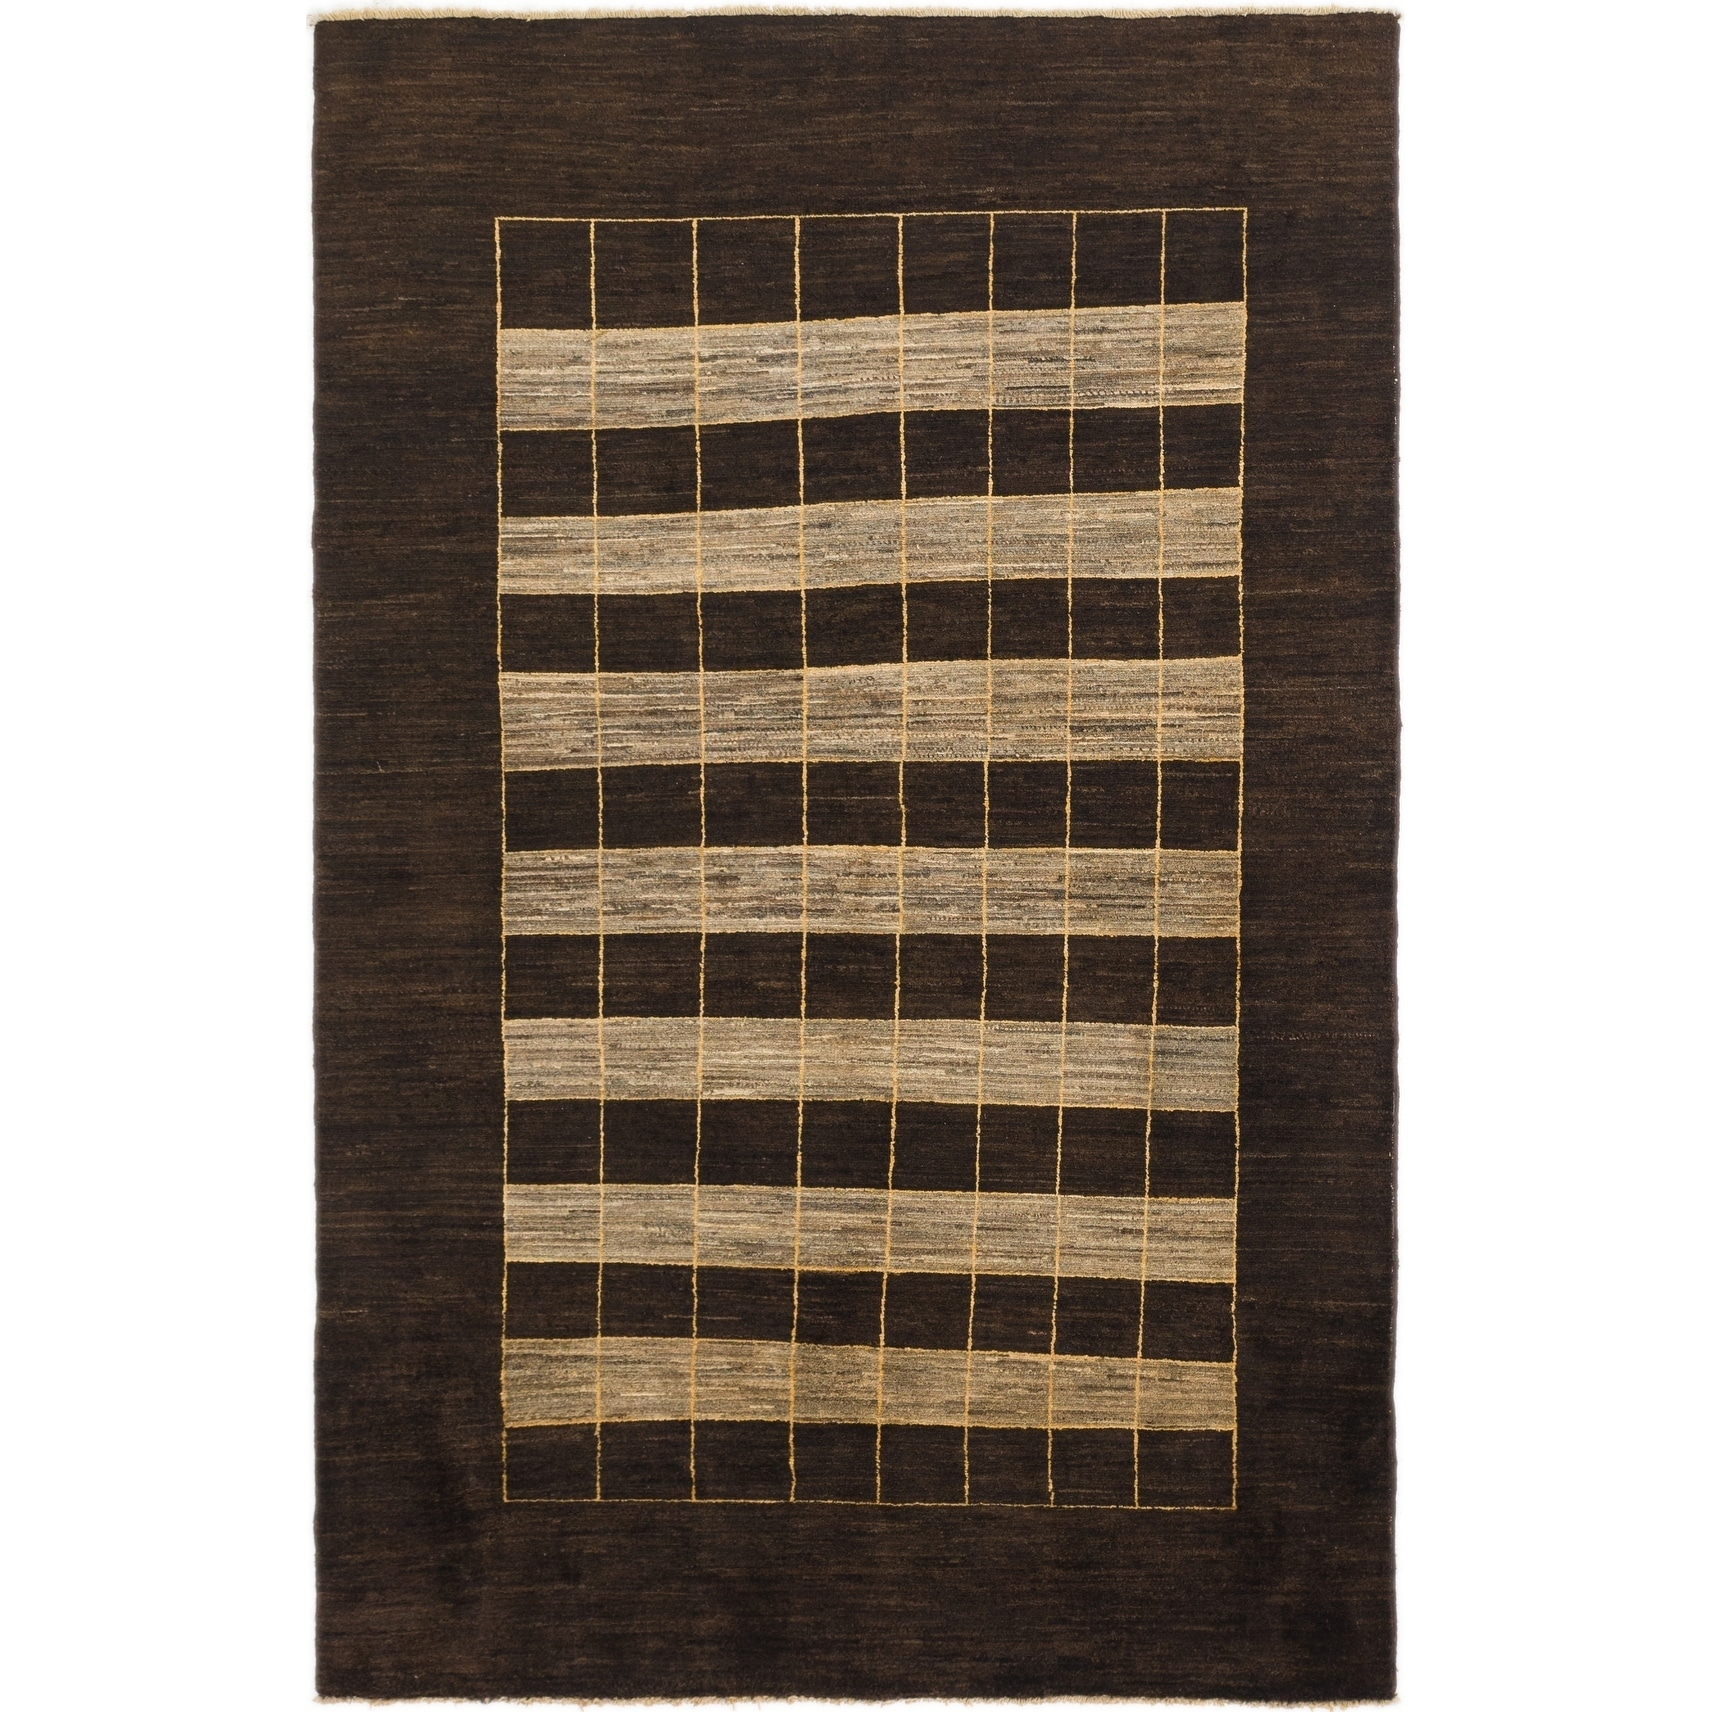 Hand Knotted Kashkuli Gabbeh Wool Area Rug - 5 x 7 10 (Brown - 5 x 7 10)